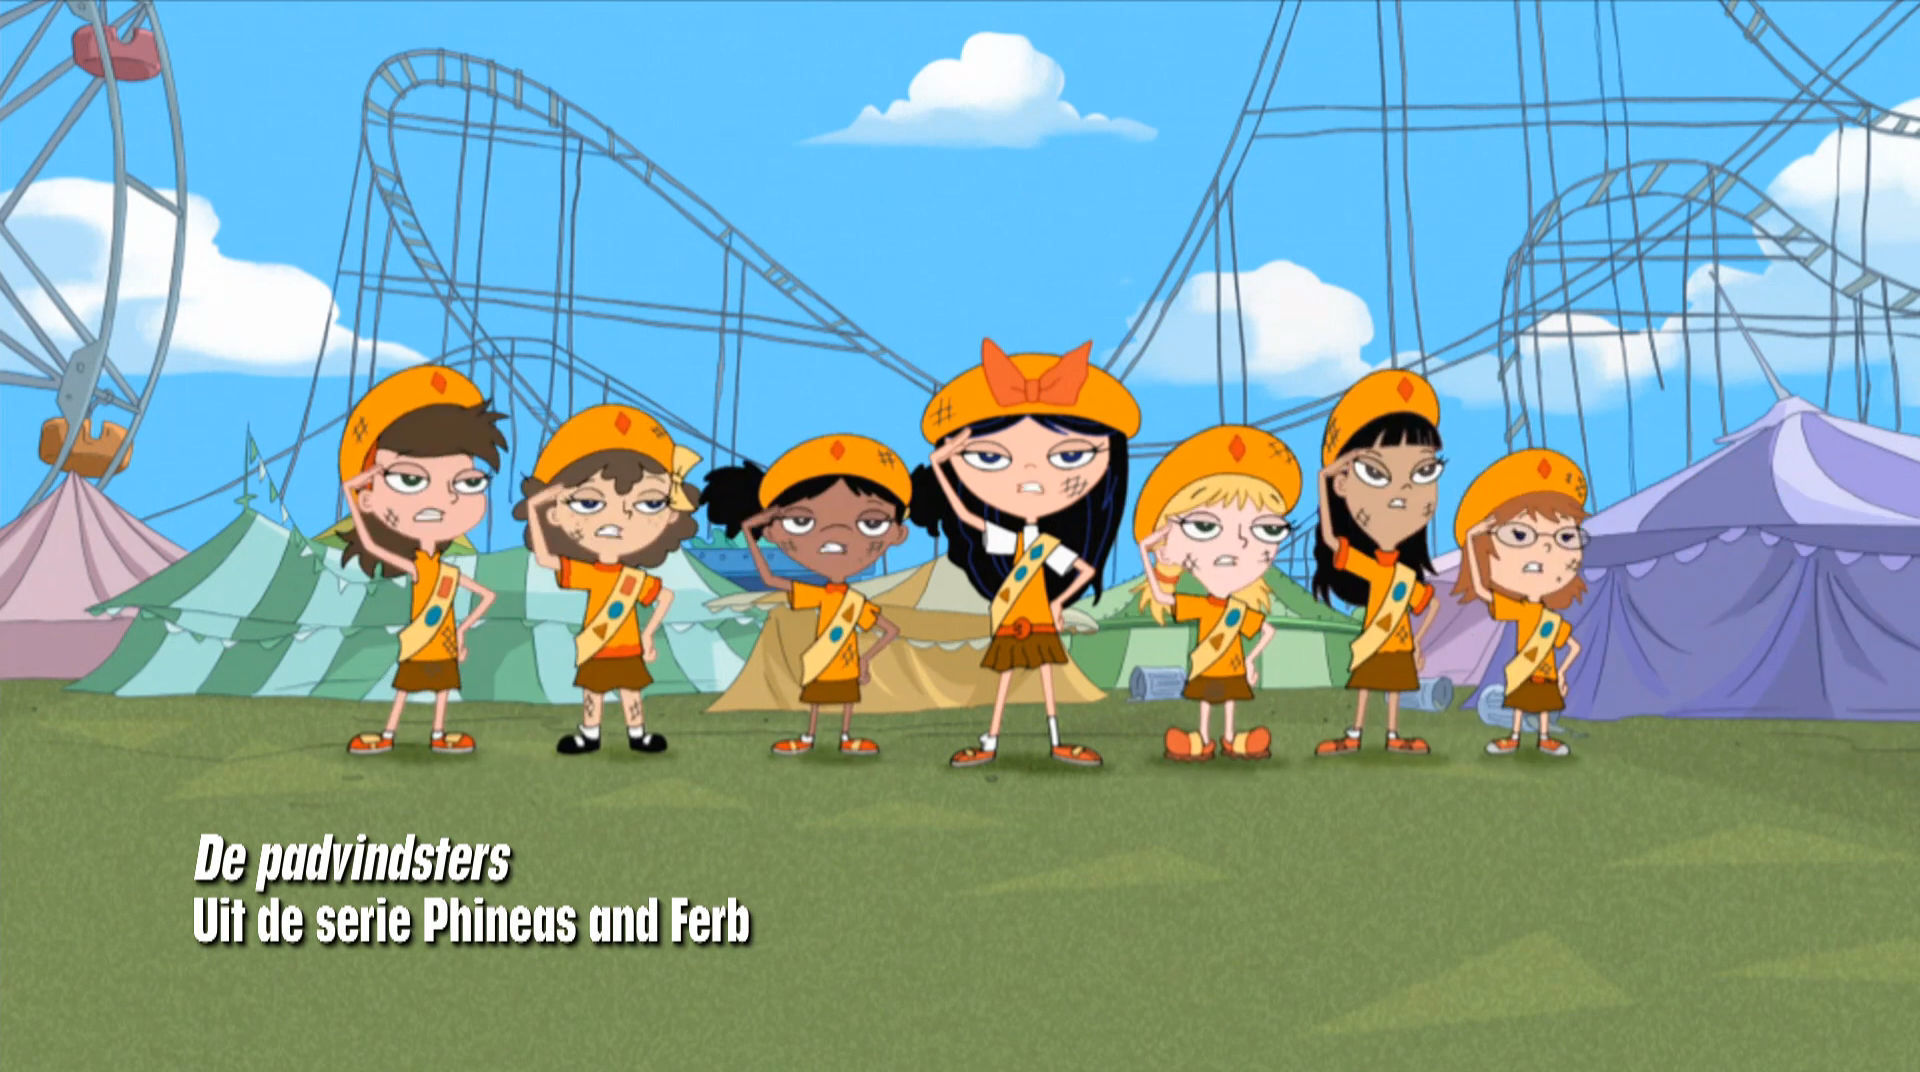 Phineas and Ferb - De padvindsters